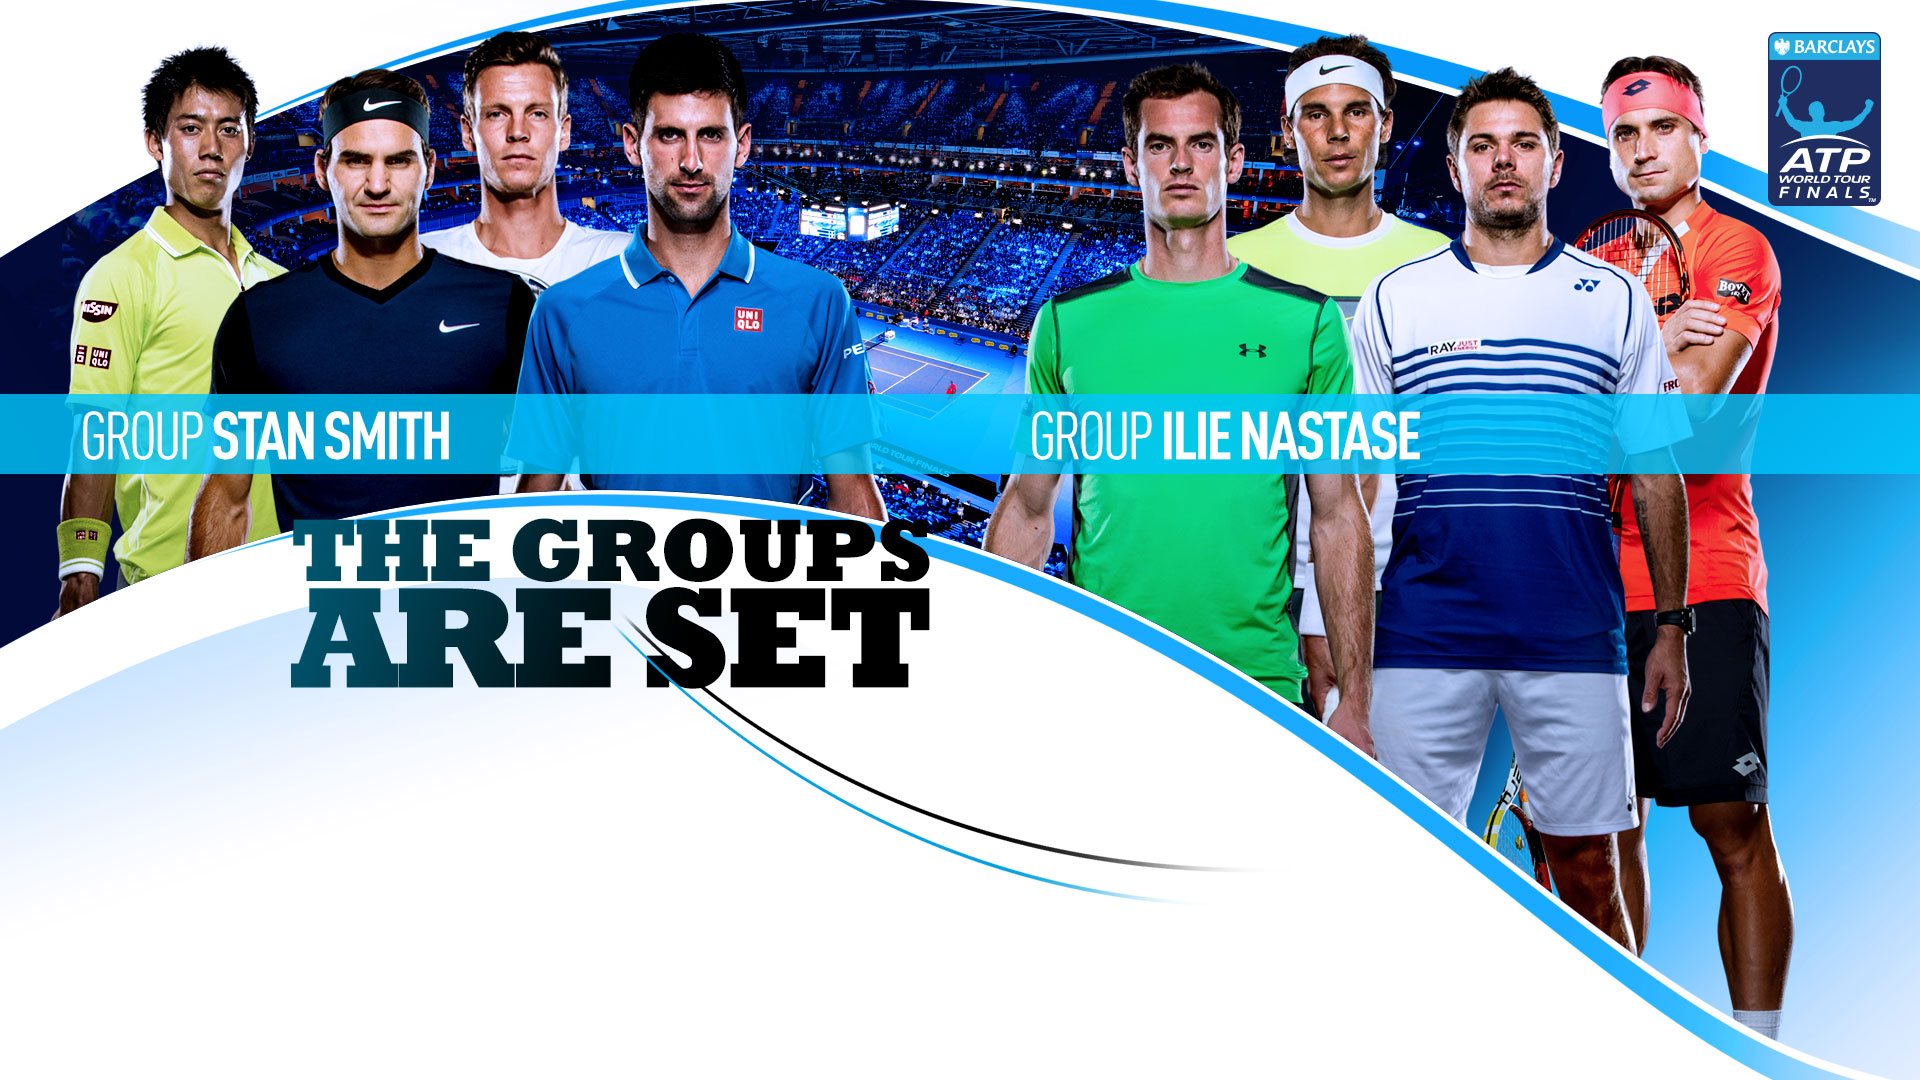 Atp World Tour Finals Draw Live